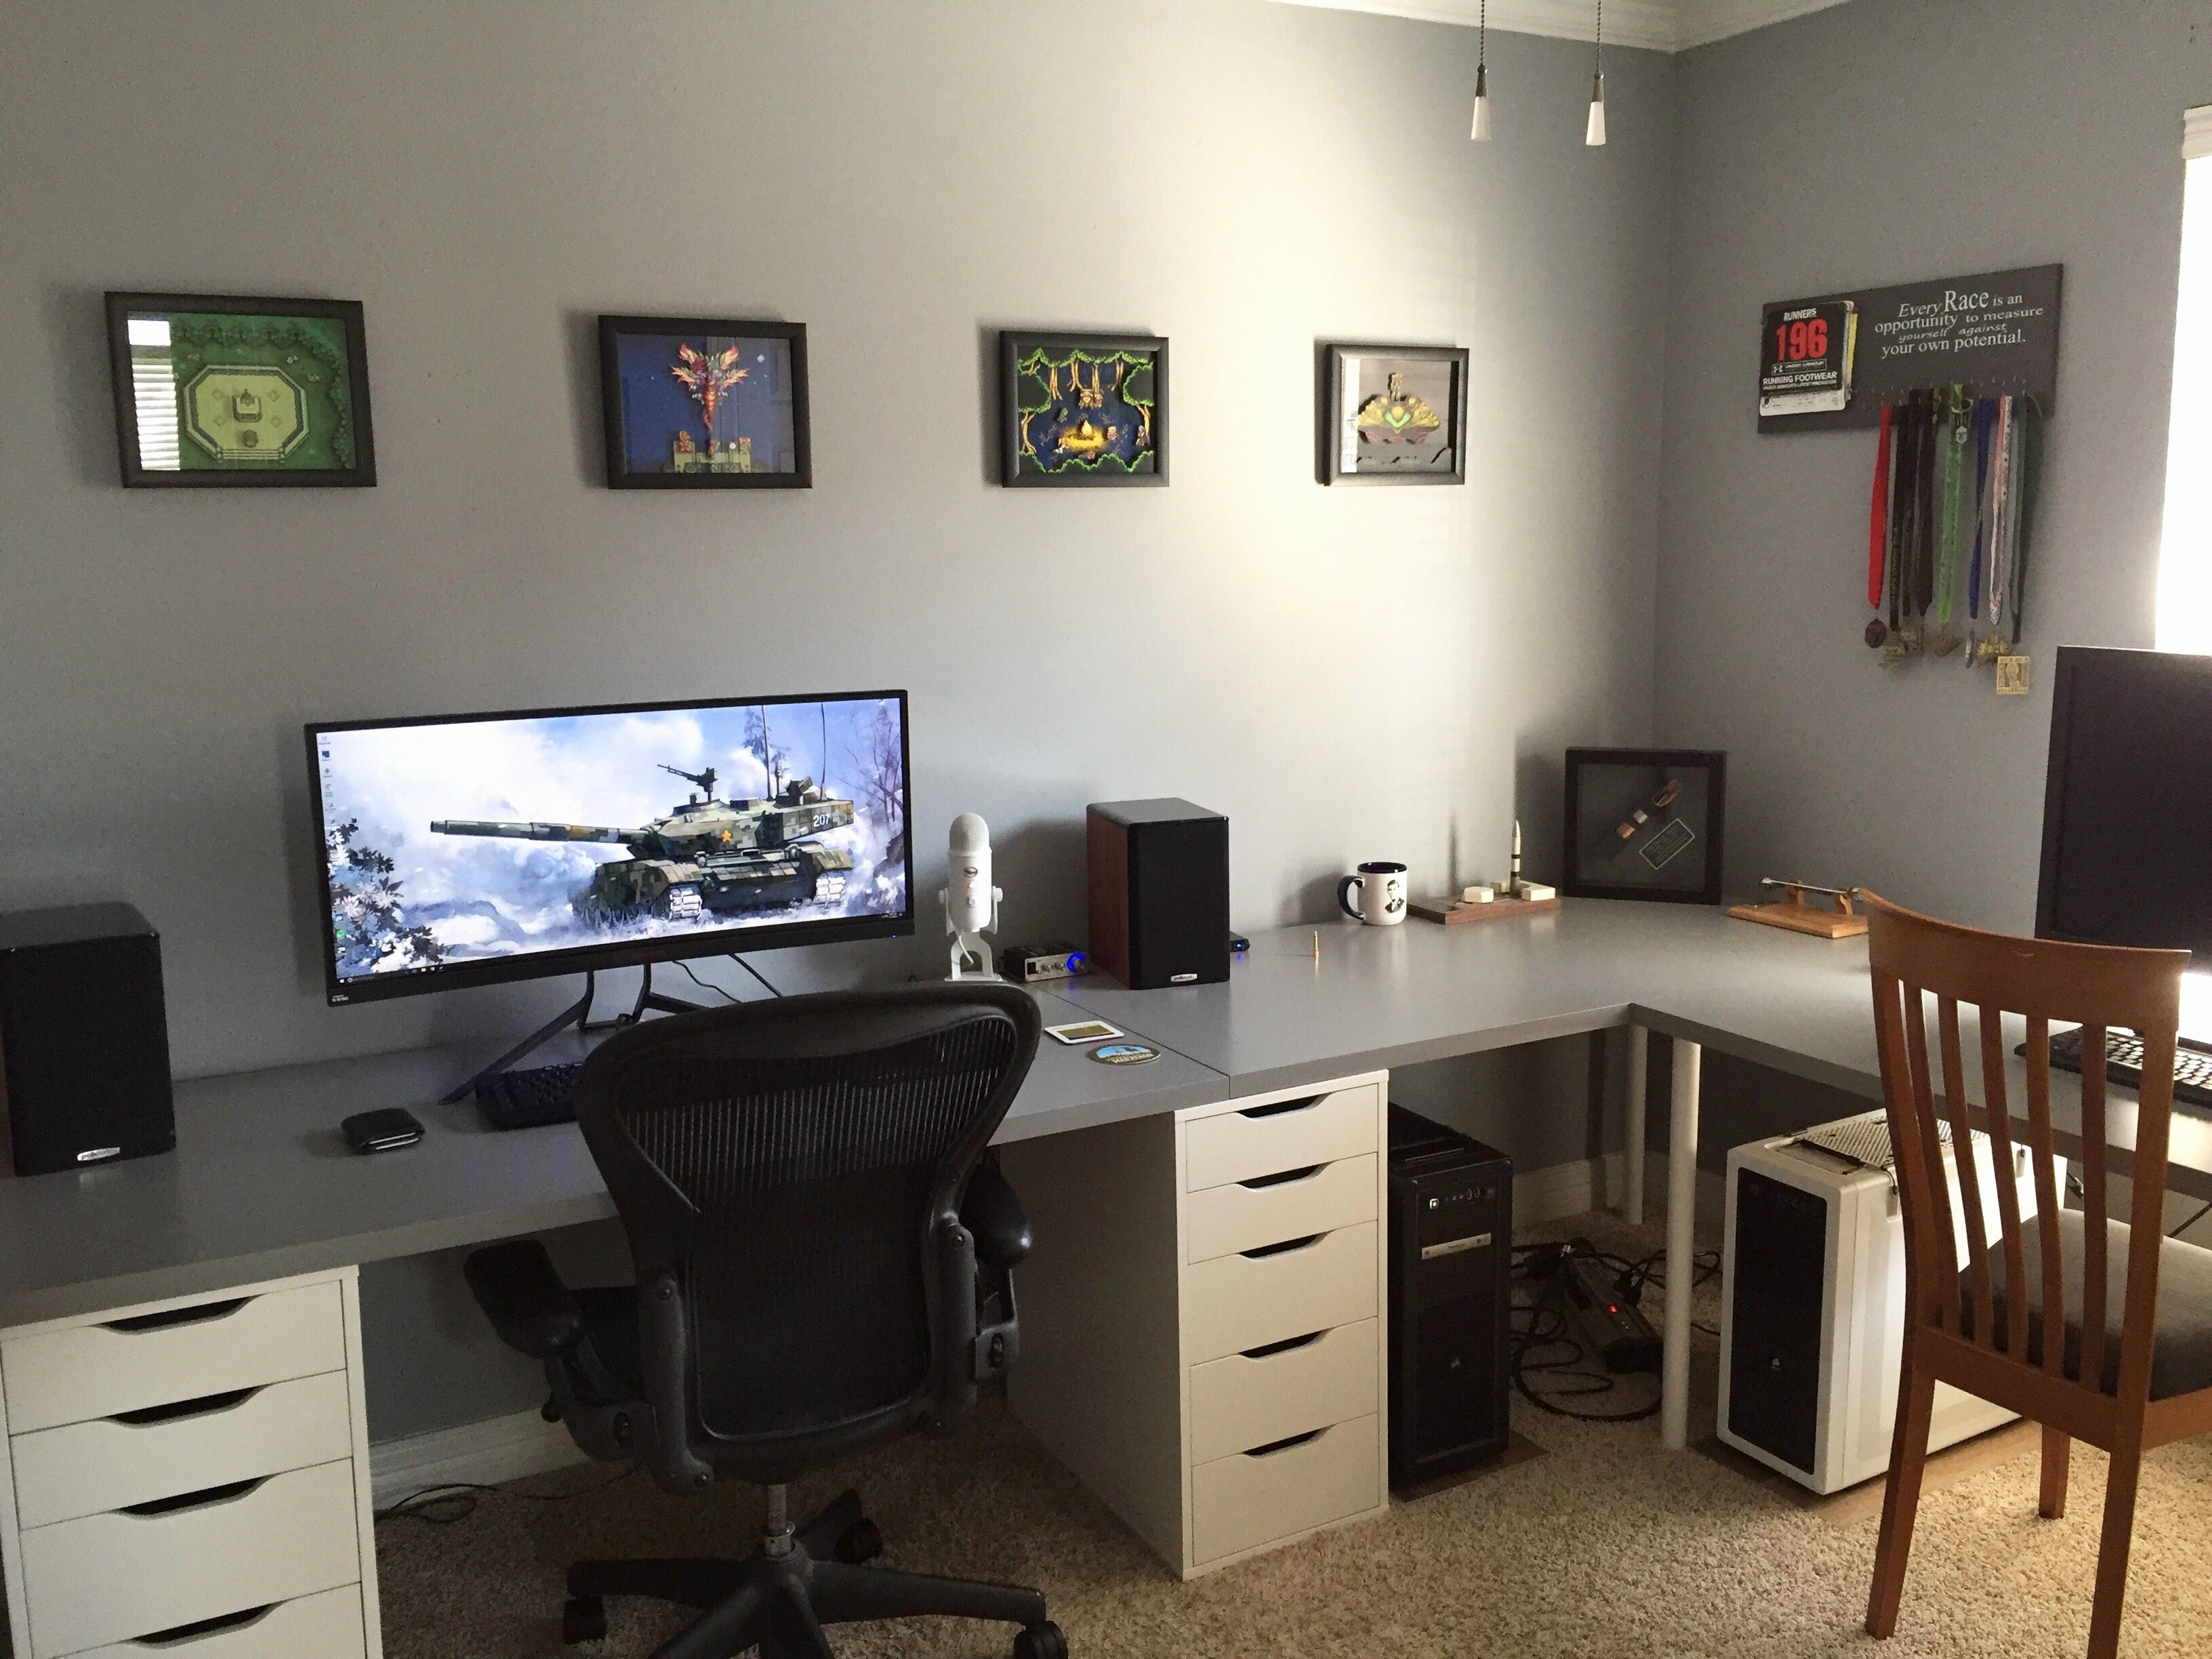 Rummy Home Office Ideas Ikea Fresh New Office Setup Just Need To Addresscables Home Office Ideas Office Furniture Layout Home Office Setup Home Office Layouts